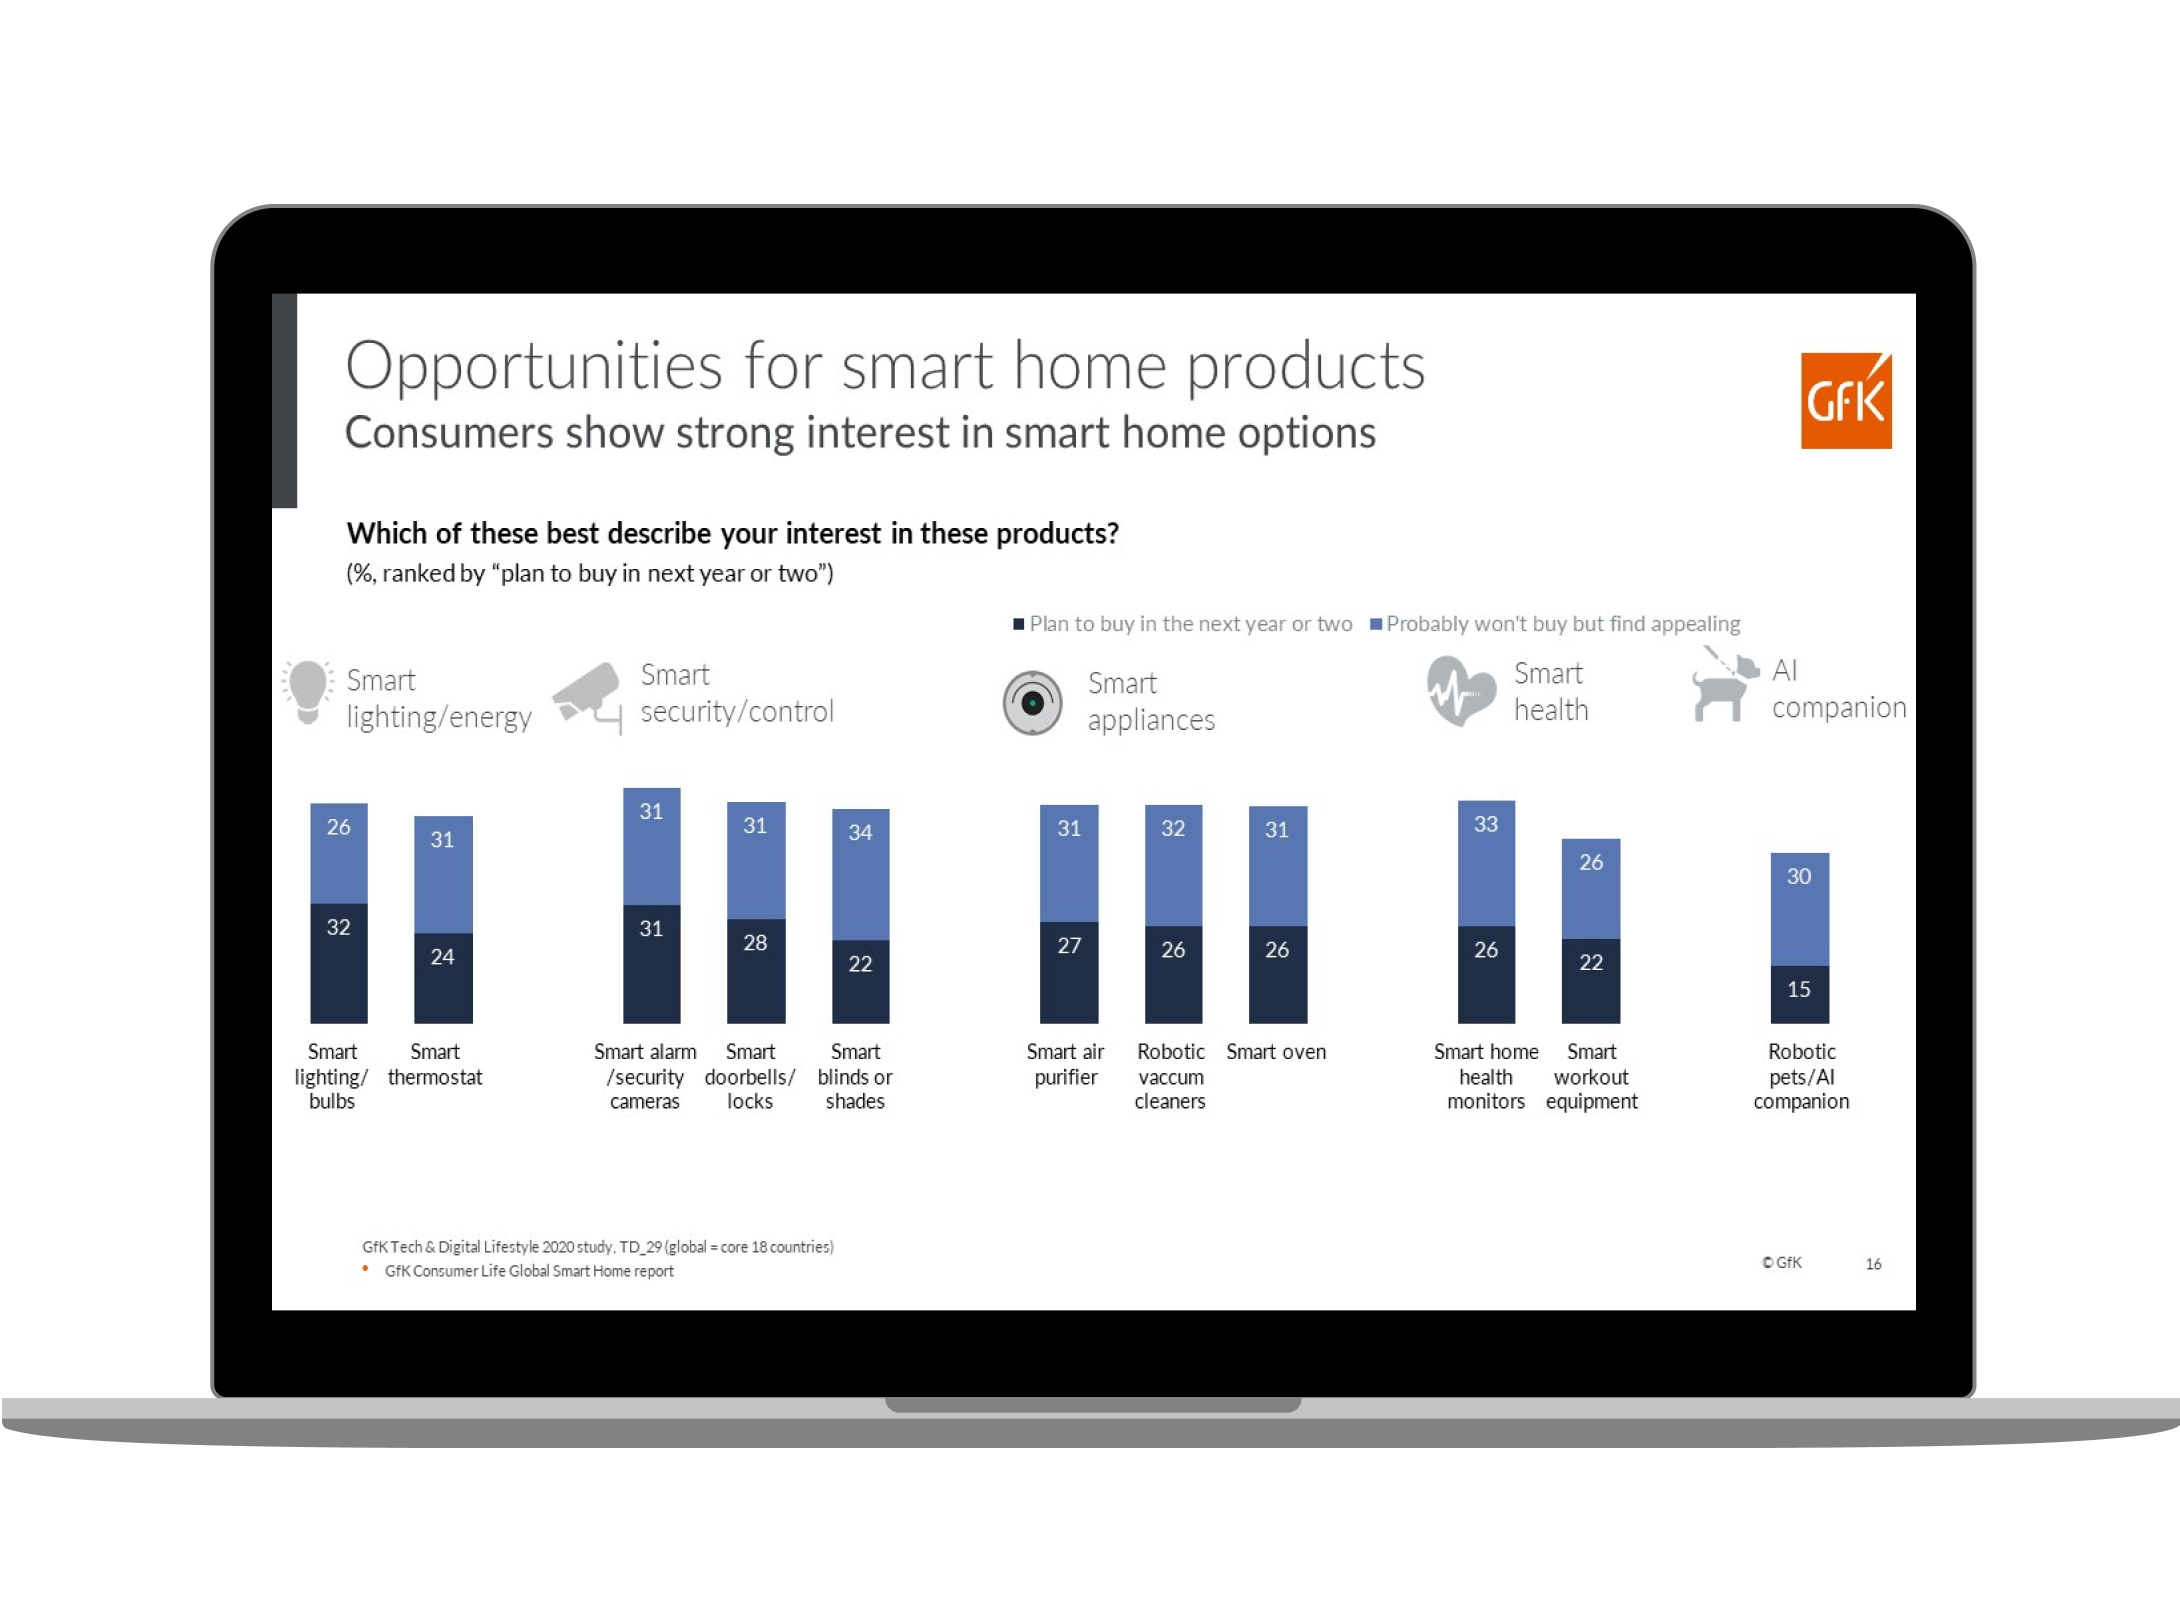 opportunities for smart home